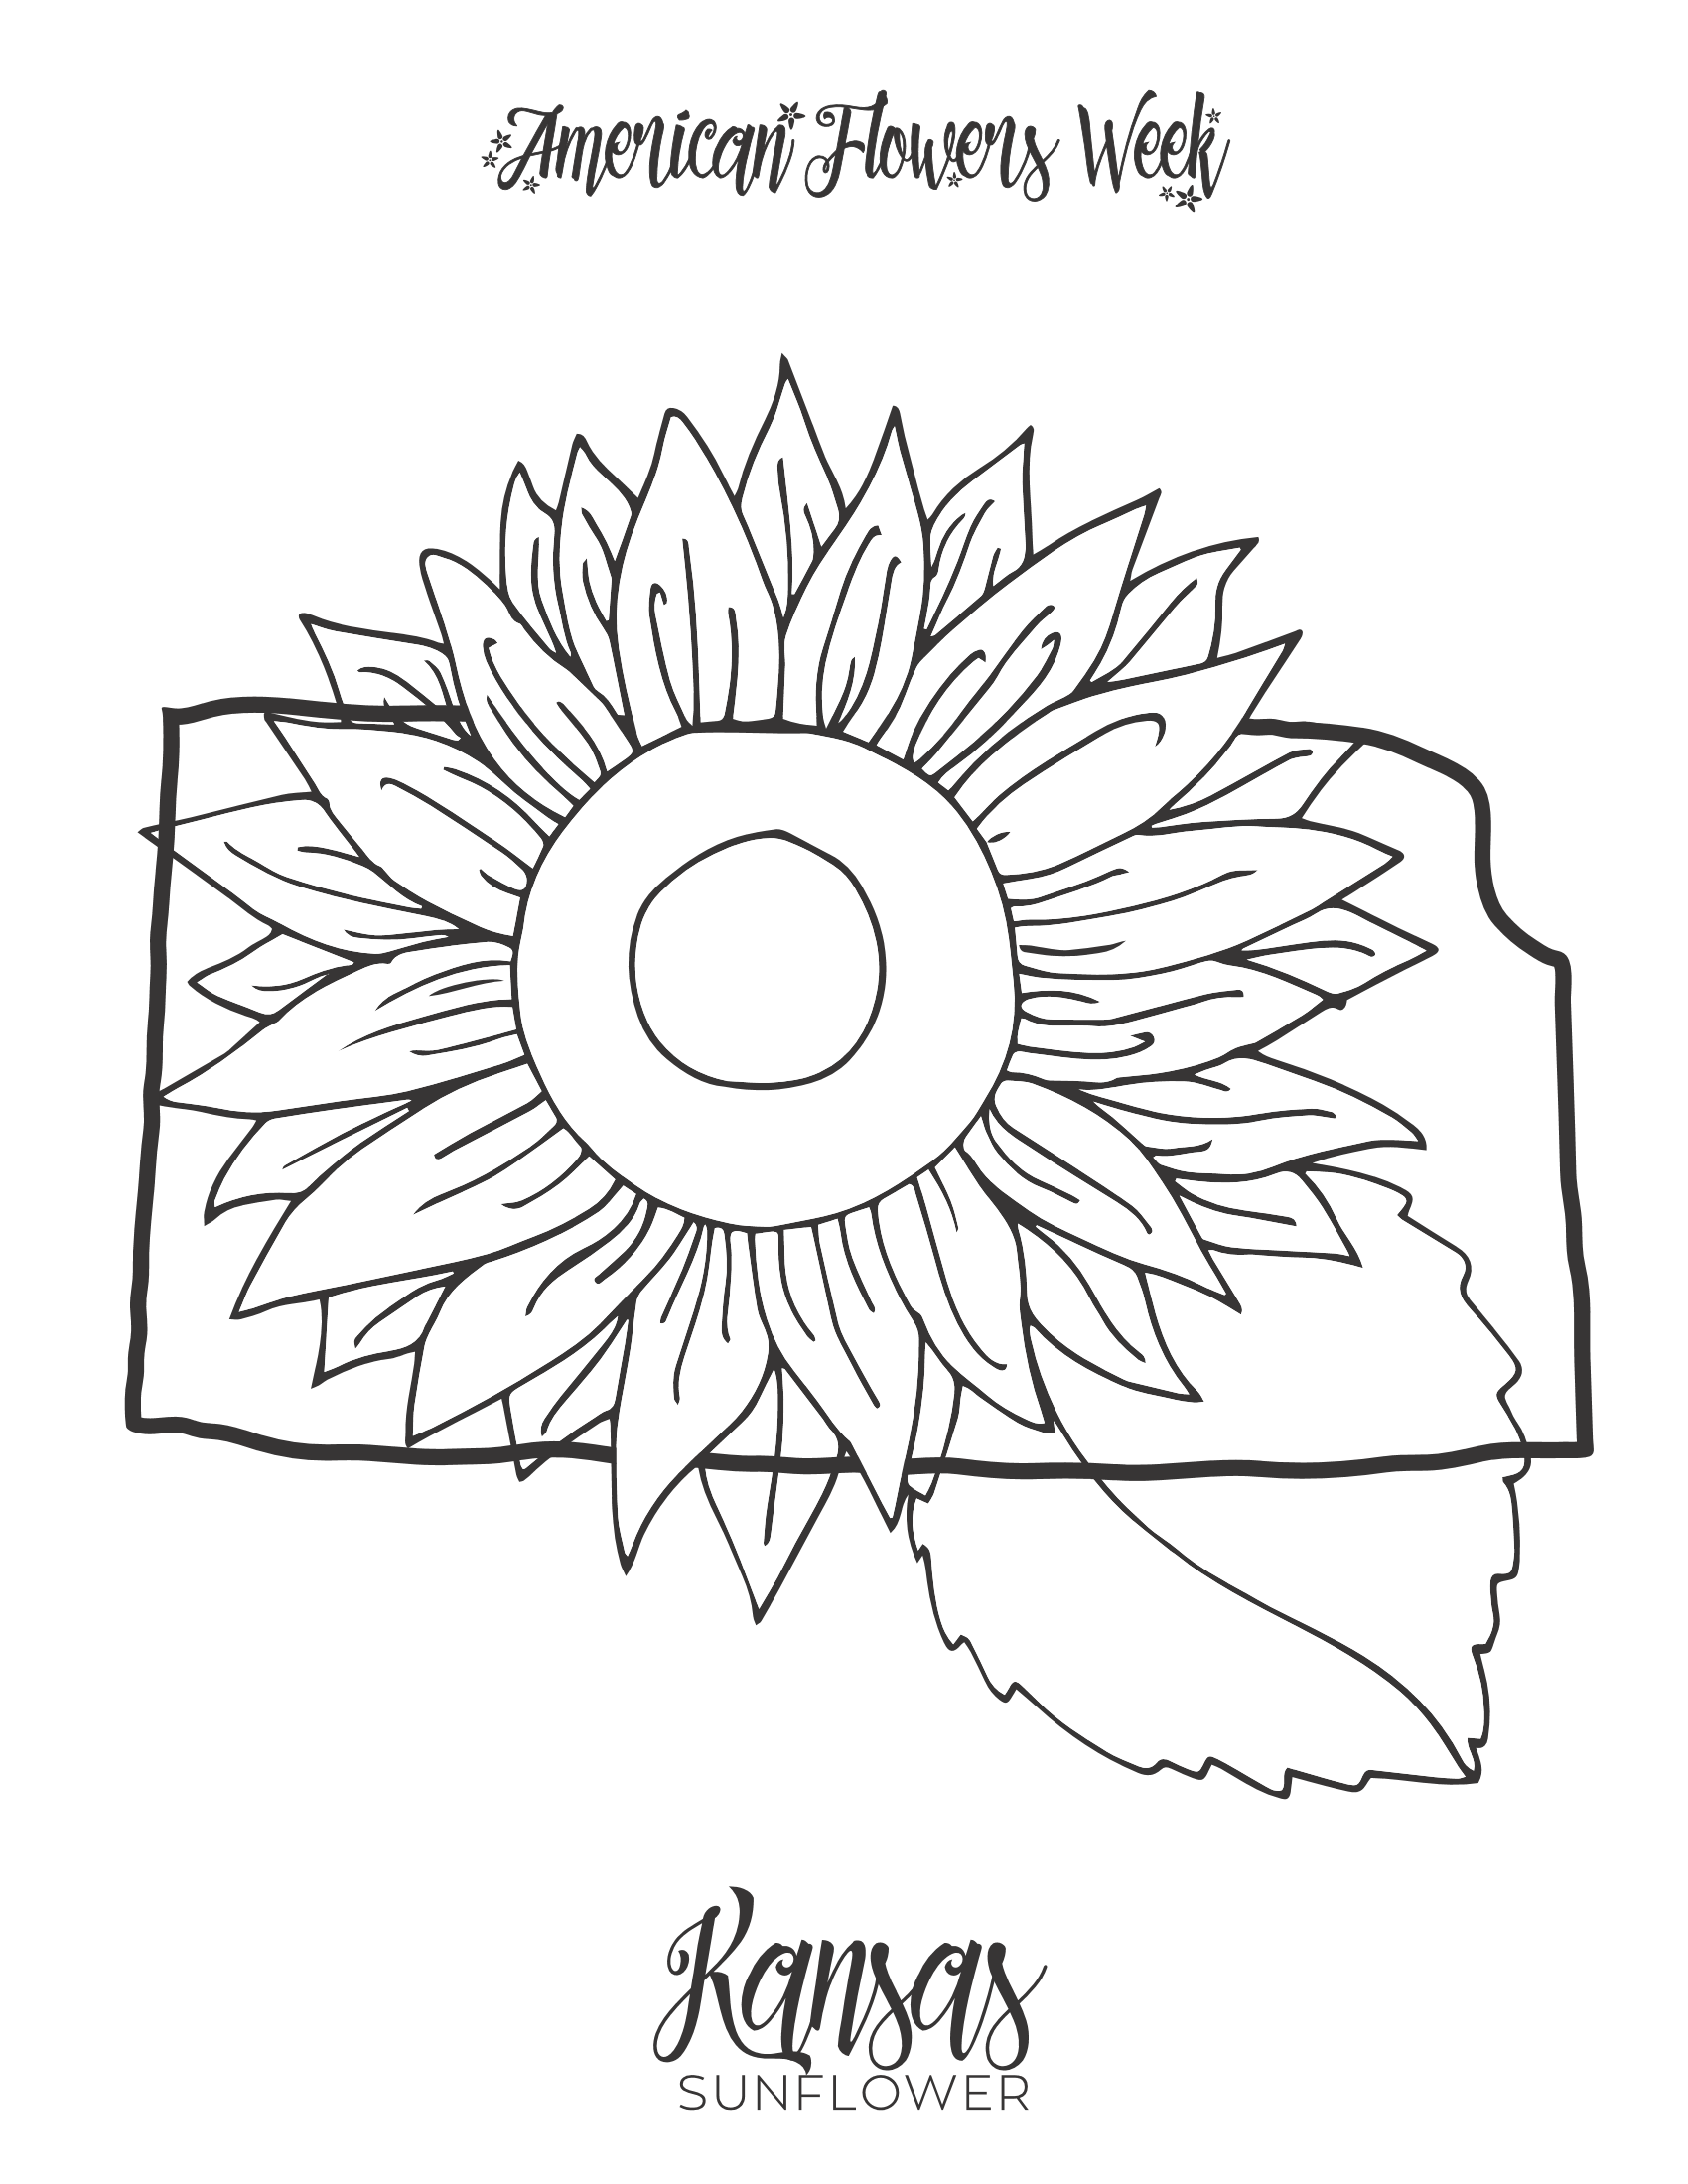 california state flower 50 state flowers free coloring pages american flowers week flower state california